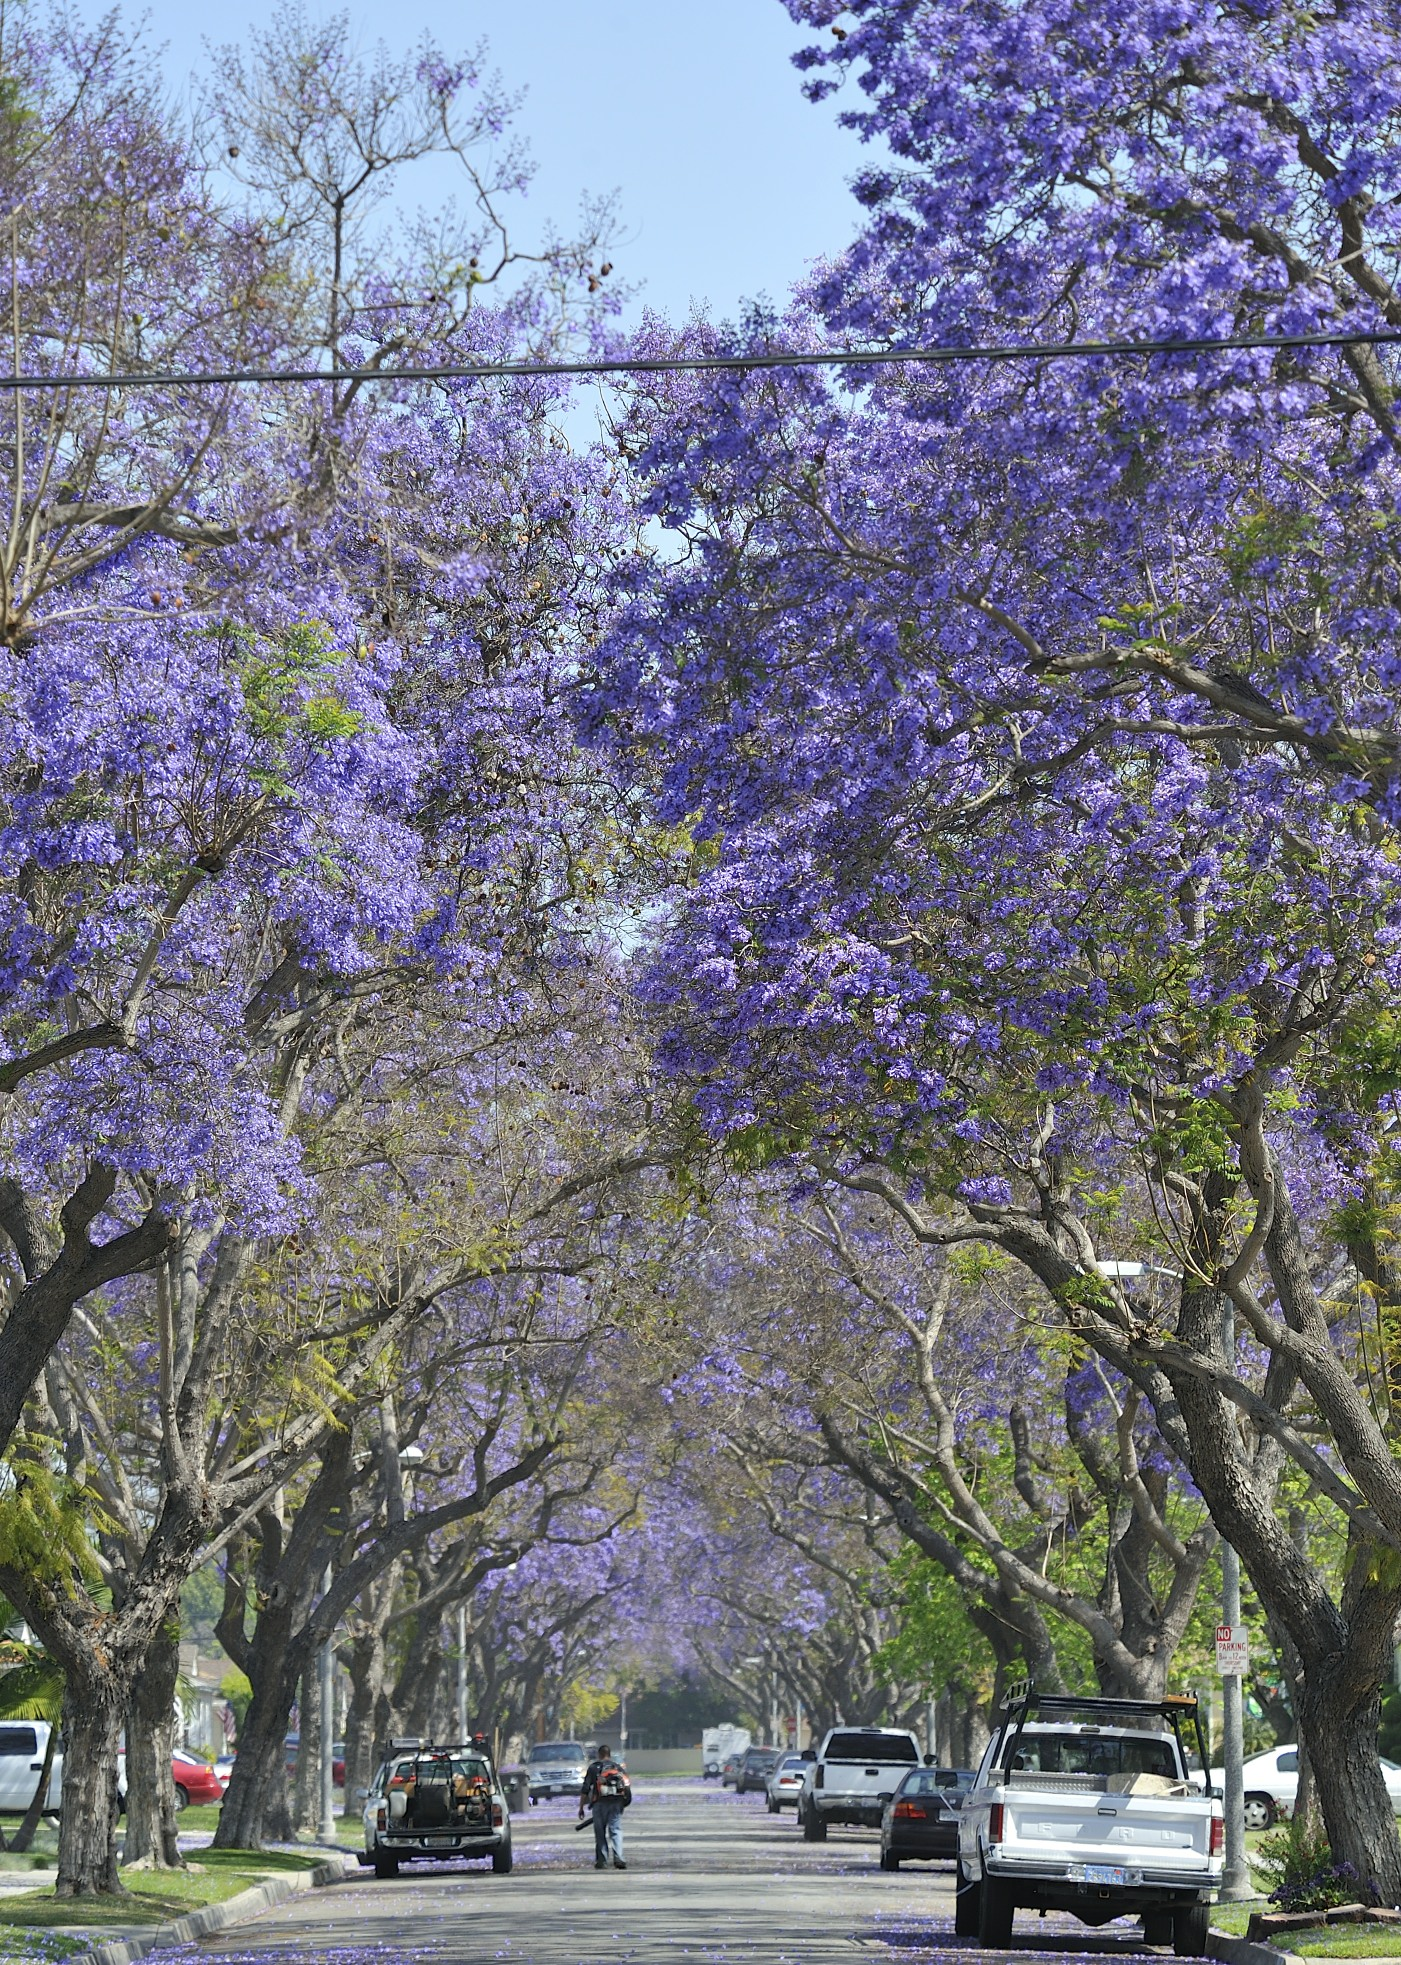 Jacaranda Trees Are Blooming Now in Southern California ...